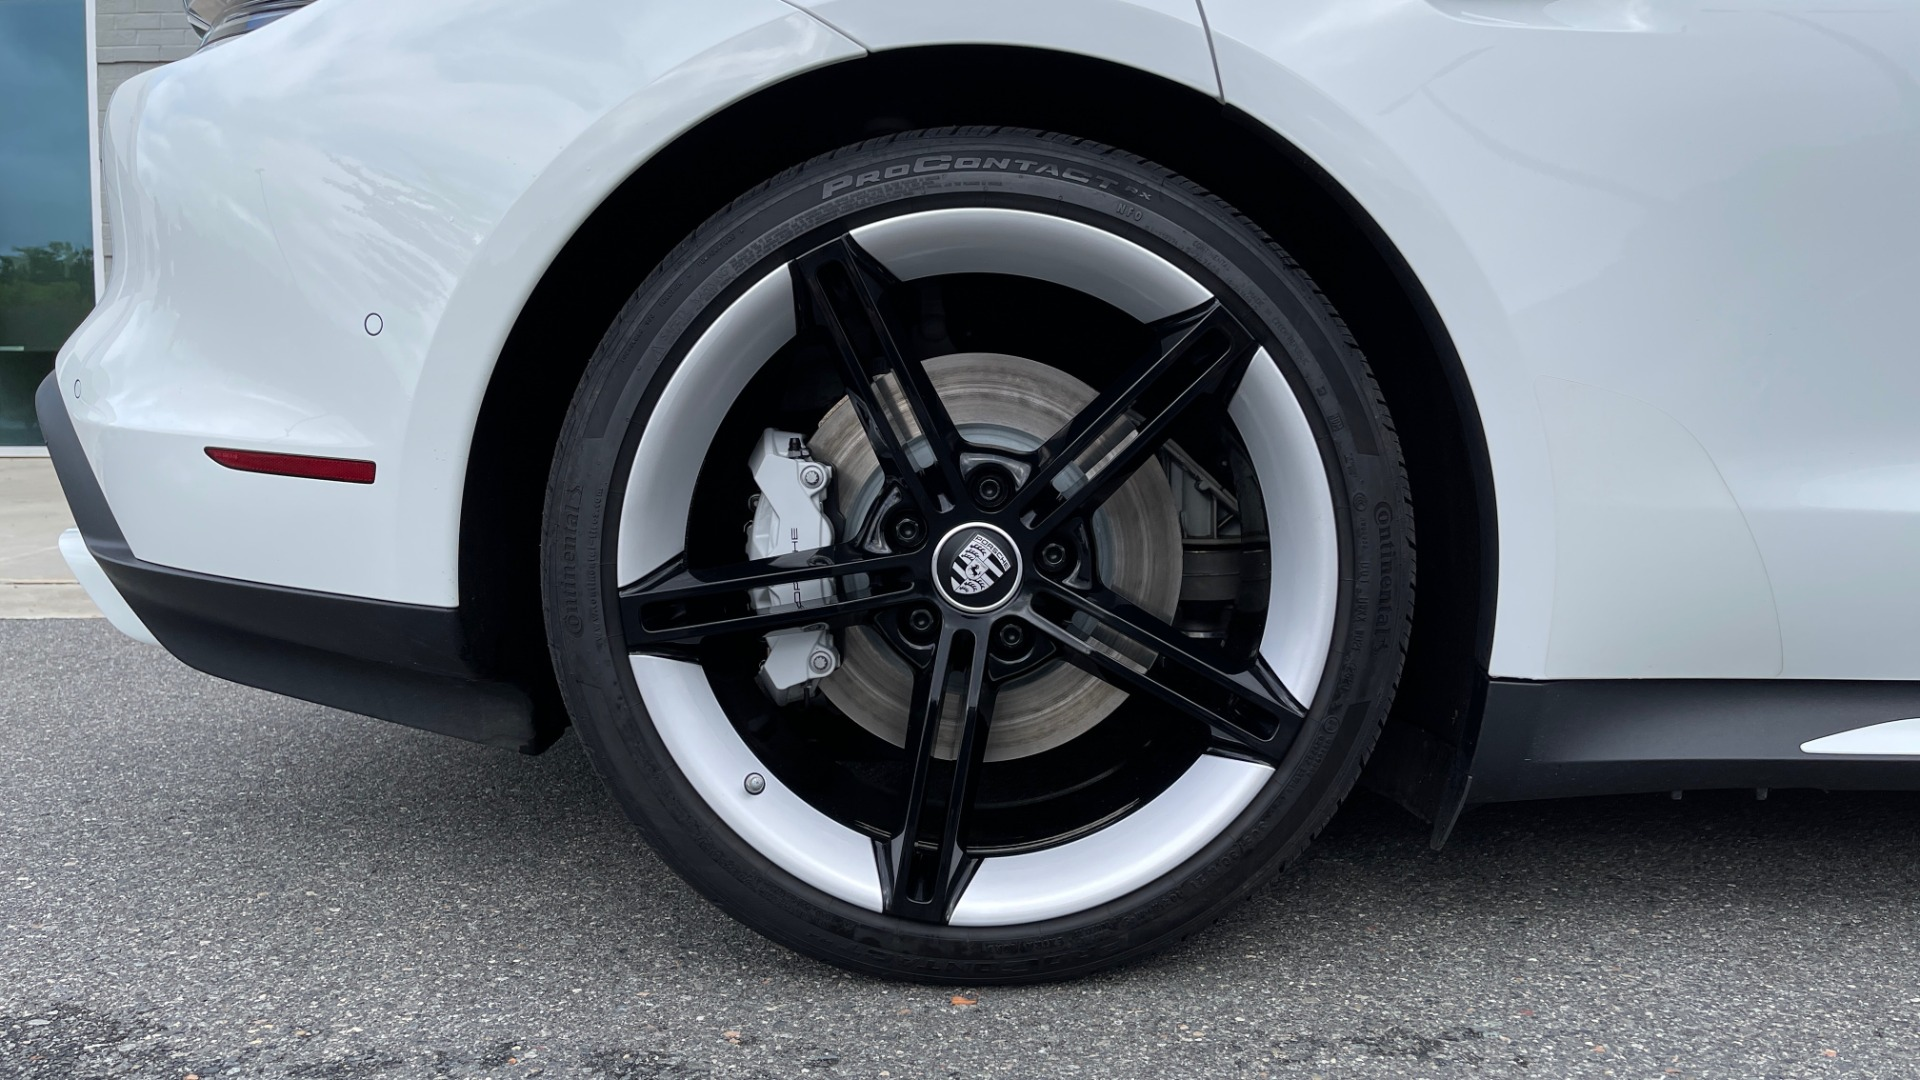 Used 2020 Porsche TAYCAN TURBO SEDAN / AWD / NAV / BOSE / PANO-ROOF / LCA / SURROUND VIEW for sale $162,995 at Formula Imports in Charlotte NC 28227 74